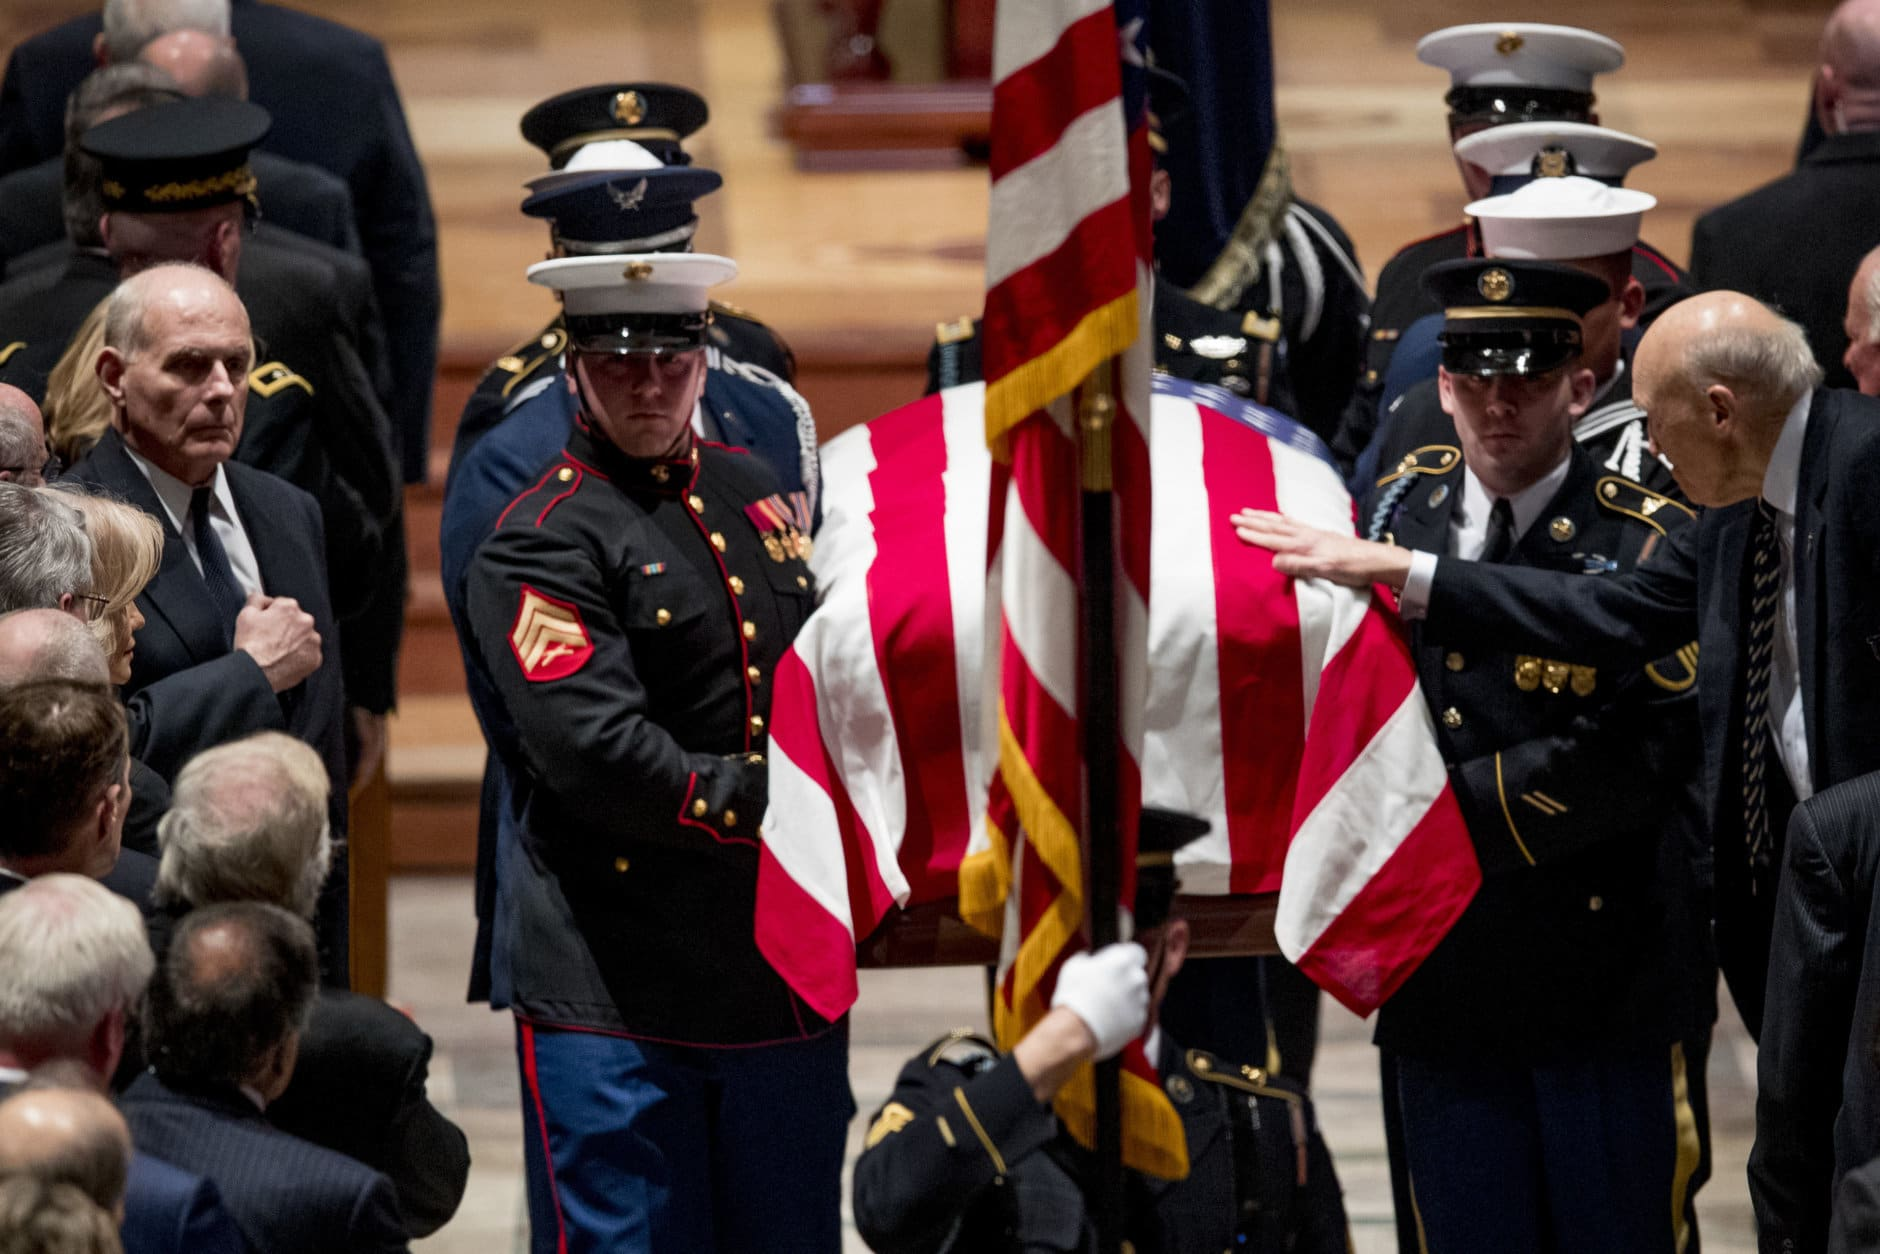 President Donald Trump's Chief of Staff John Kelly, left, watches as Former Sen. Alan Simpson, R-Wyo, right, touches the flag-draped casket of former President George H.W. Bush as it is carried out by a military honor guard during a State Funeral at the National Cathedral, December 5, 2018 in Washington, DC. President Bush will be buried at his final resting place at the George H.W. Bush Presidential Library at Texas A&M University in College Station, Texas. A WWII combat veteran, Bush served as a member of Congress from Texas, ambassador to the United Nations, director of the CIA, vice president and 41st president of the United States. (Photo by Andrew Harnik-Pool/Getty Images)